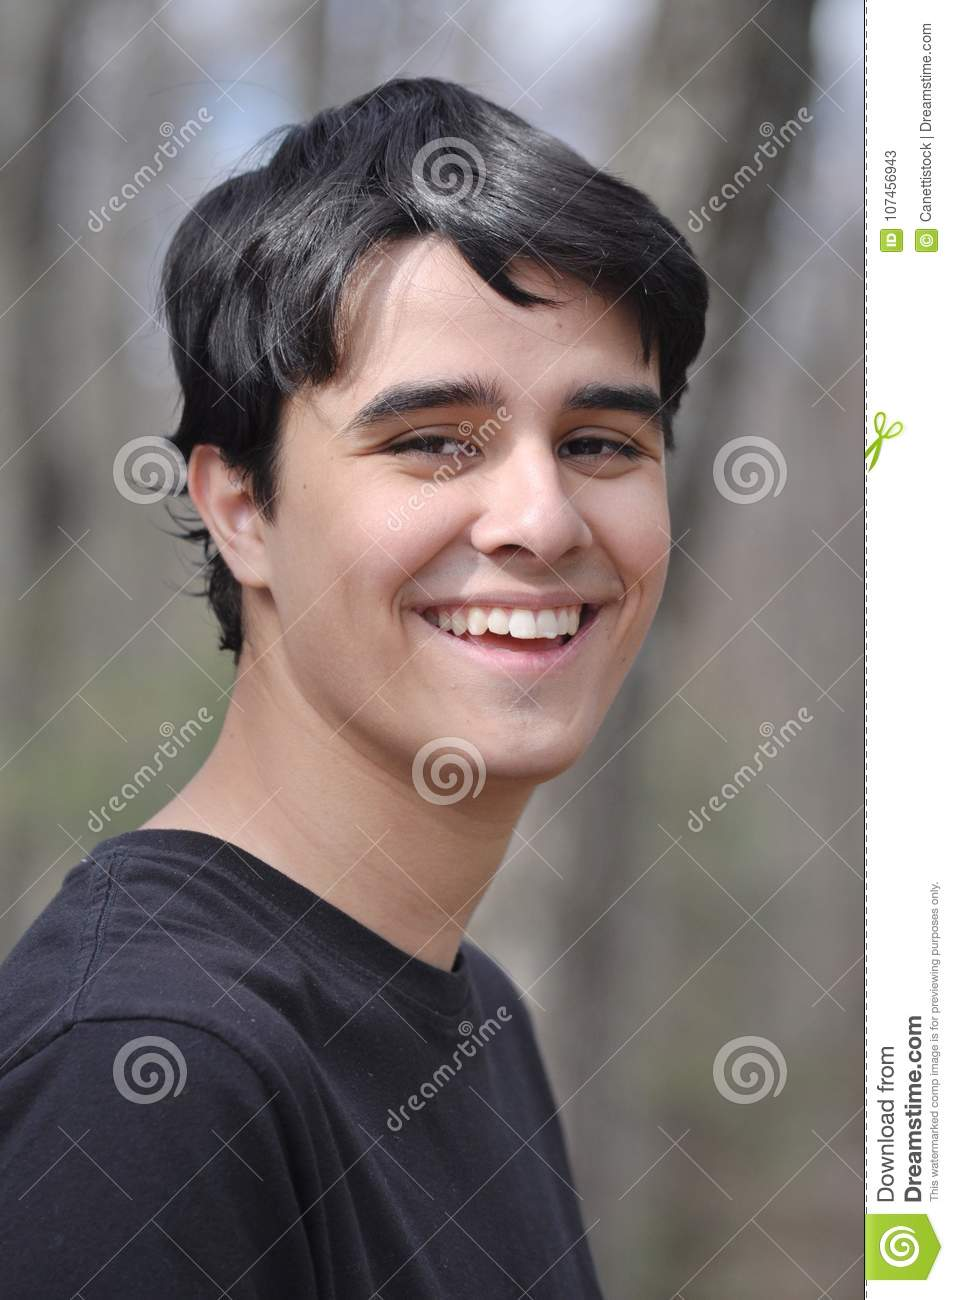 Sweet and Handsome high-school boy smiling to the camera